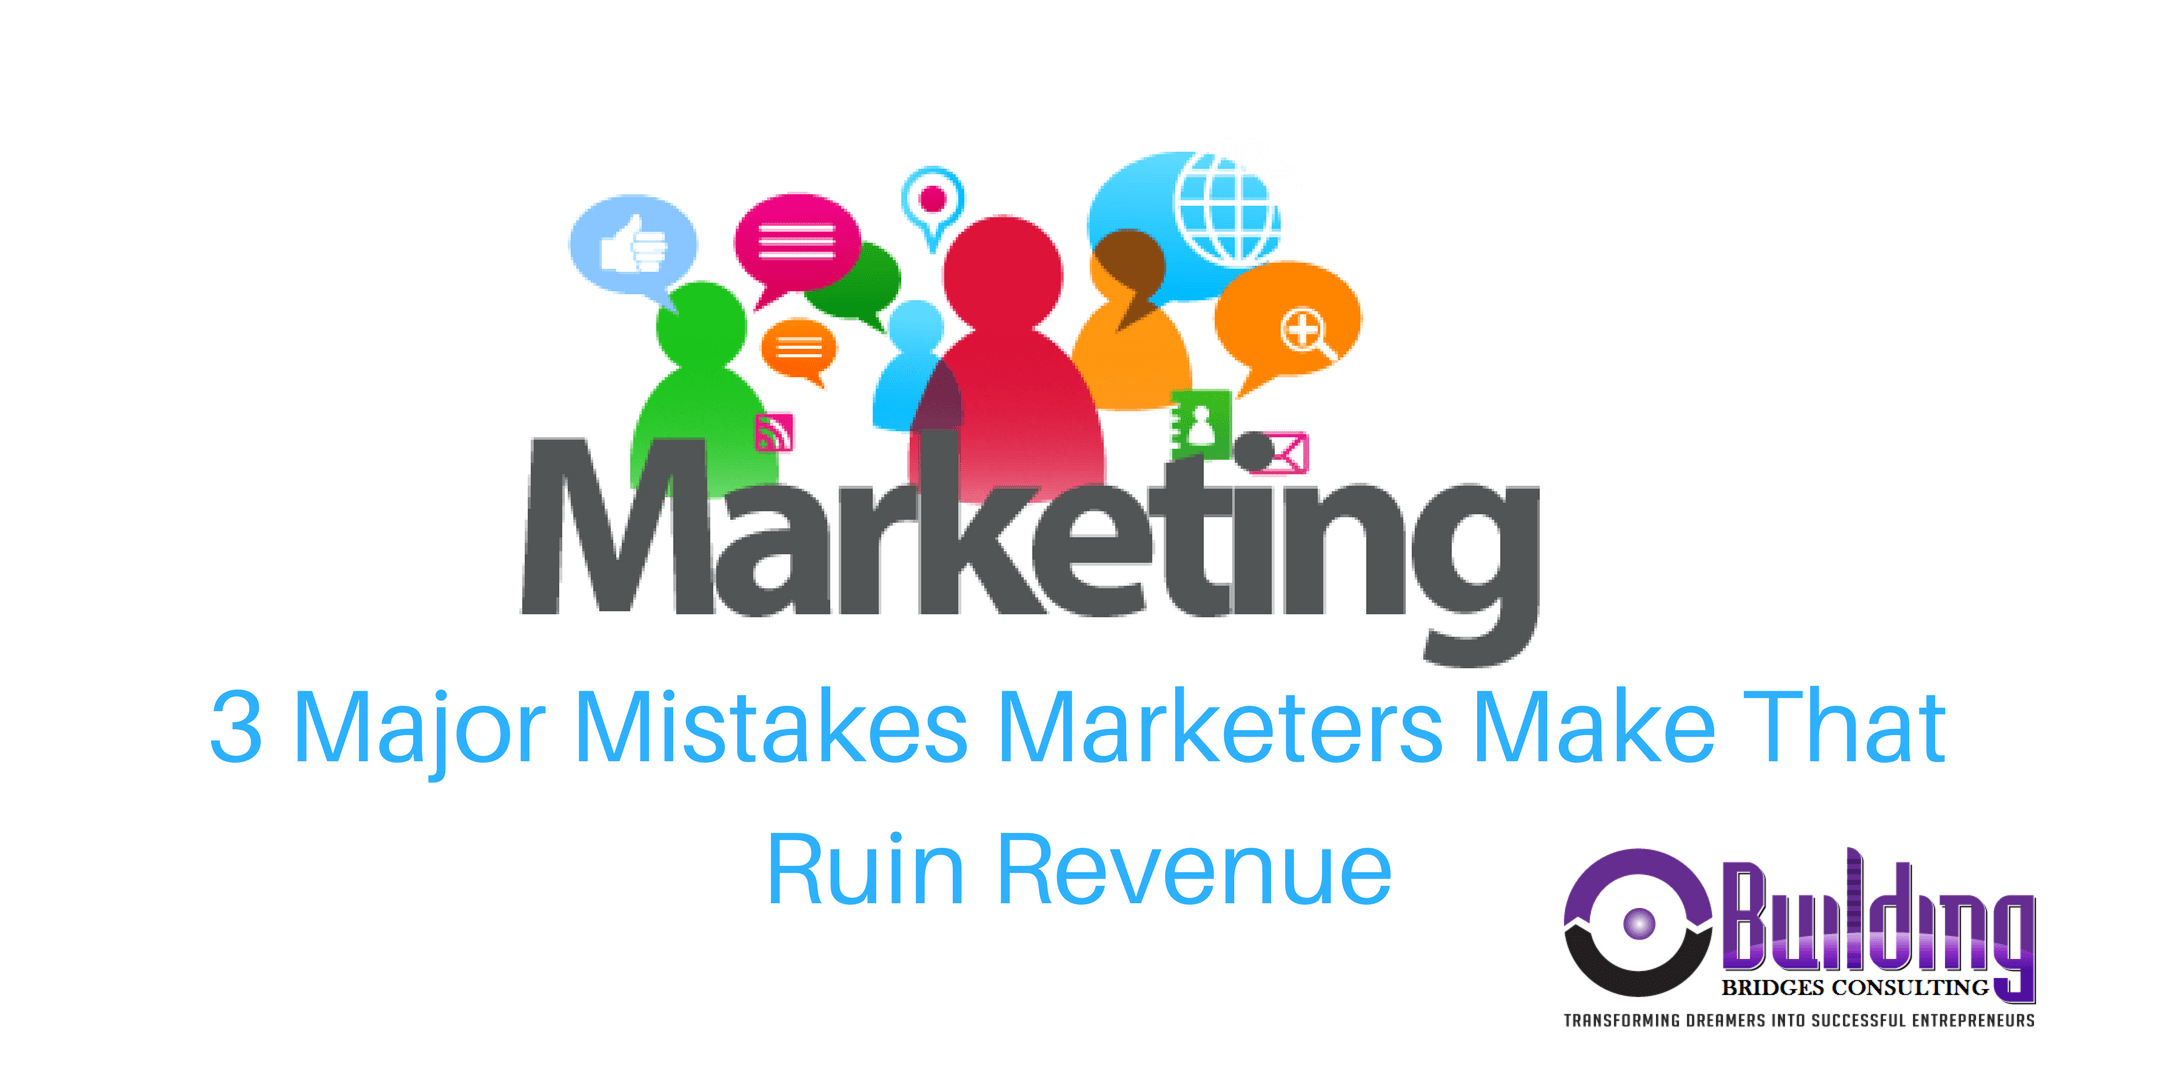 3 Major Mistakes Marketers Make that Ruin Revenue